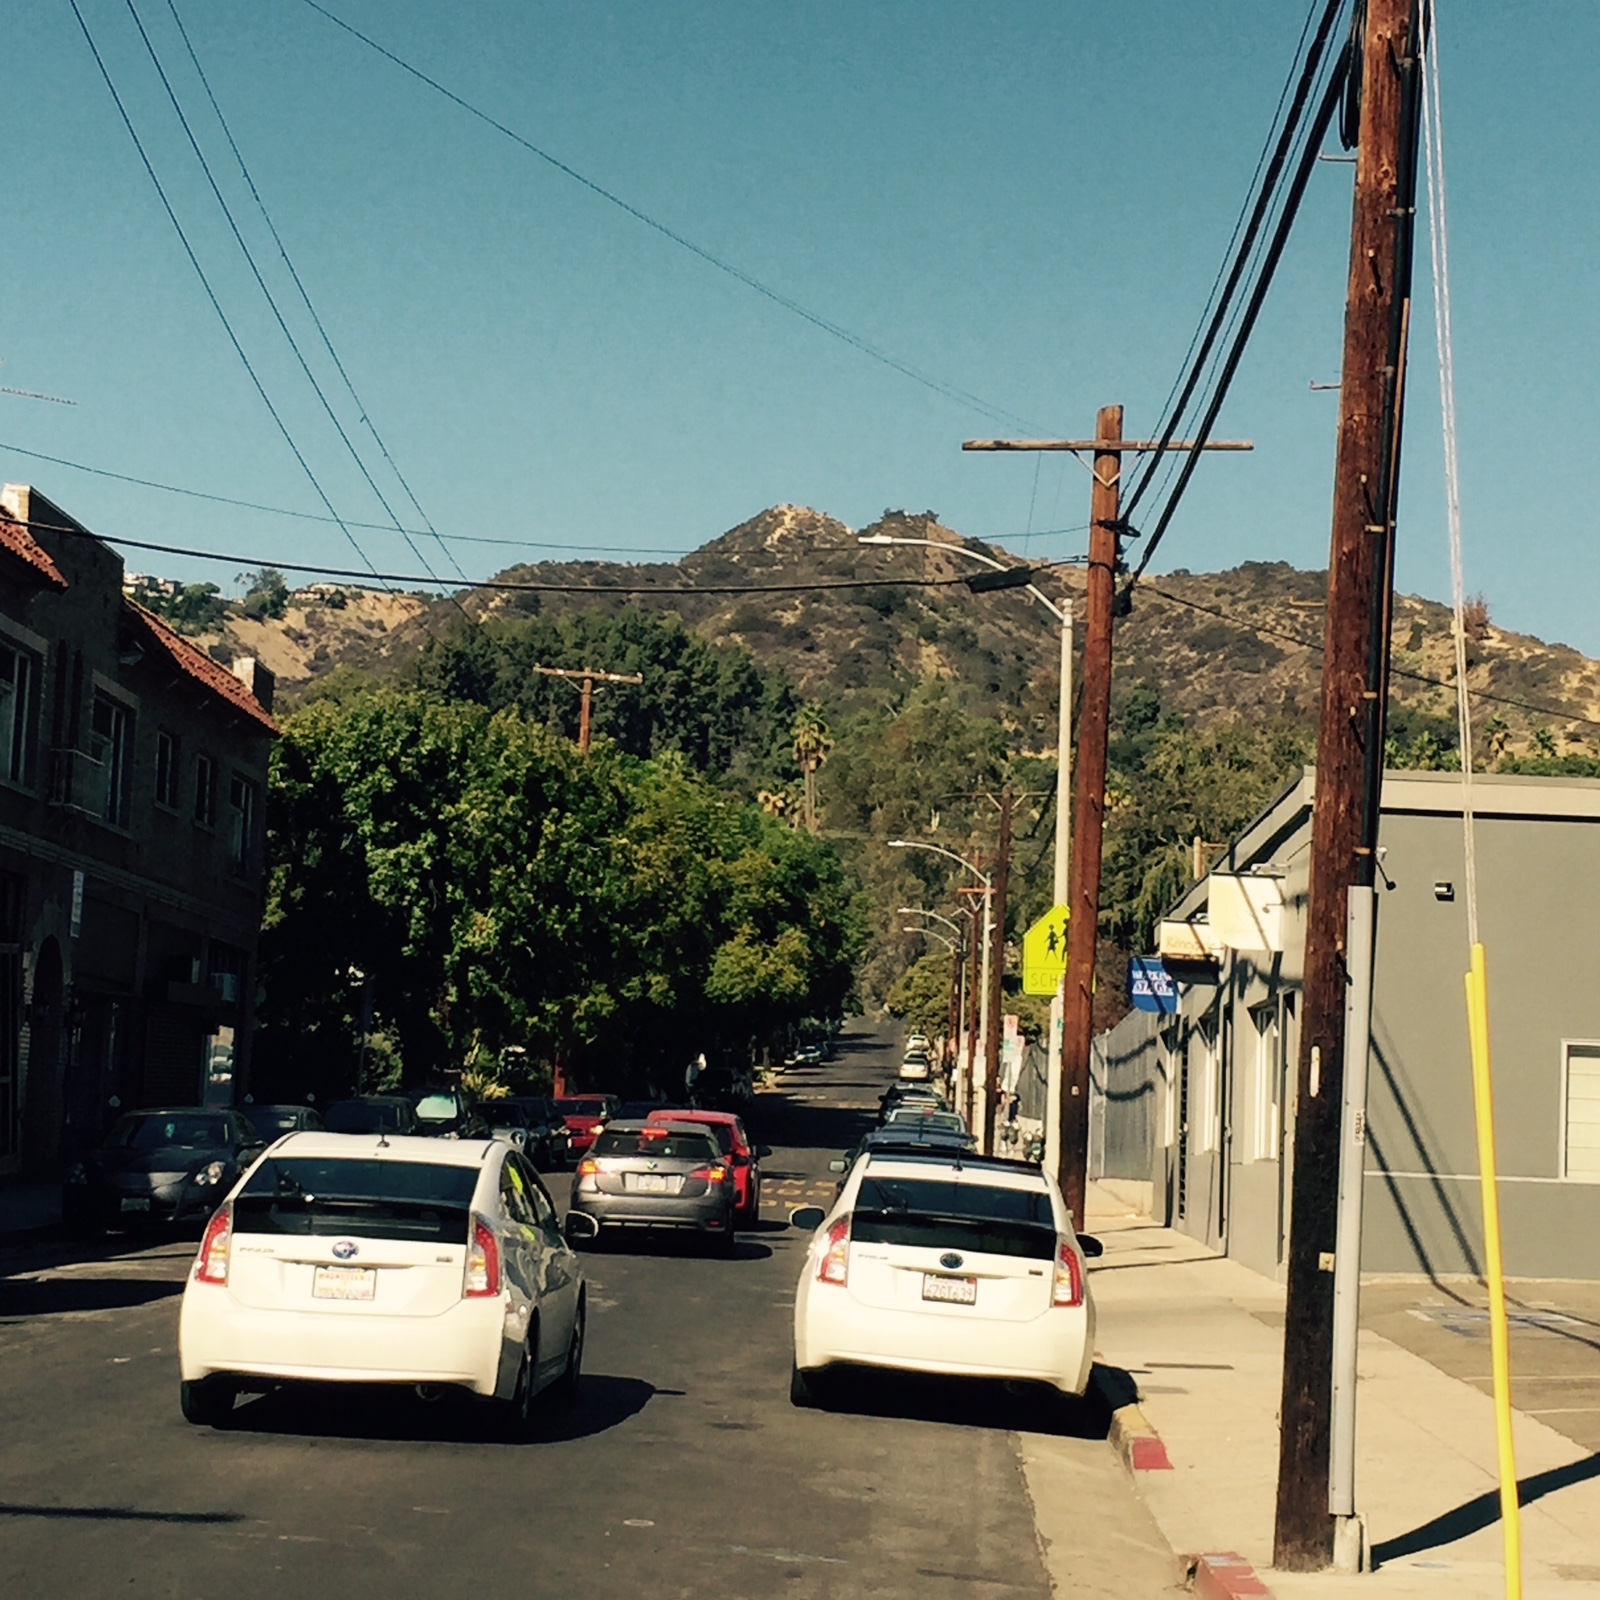 Image 18. Santa Monica Mountains, view from the corner of Sunset and Gardner, Hollywood, California, USA. Photo by Jonathan P. Hersh. Permission granted. (title by author).